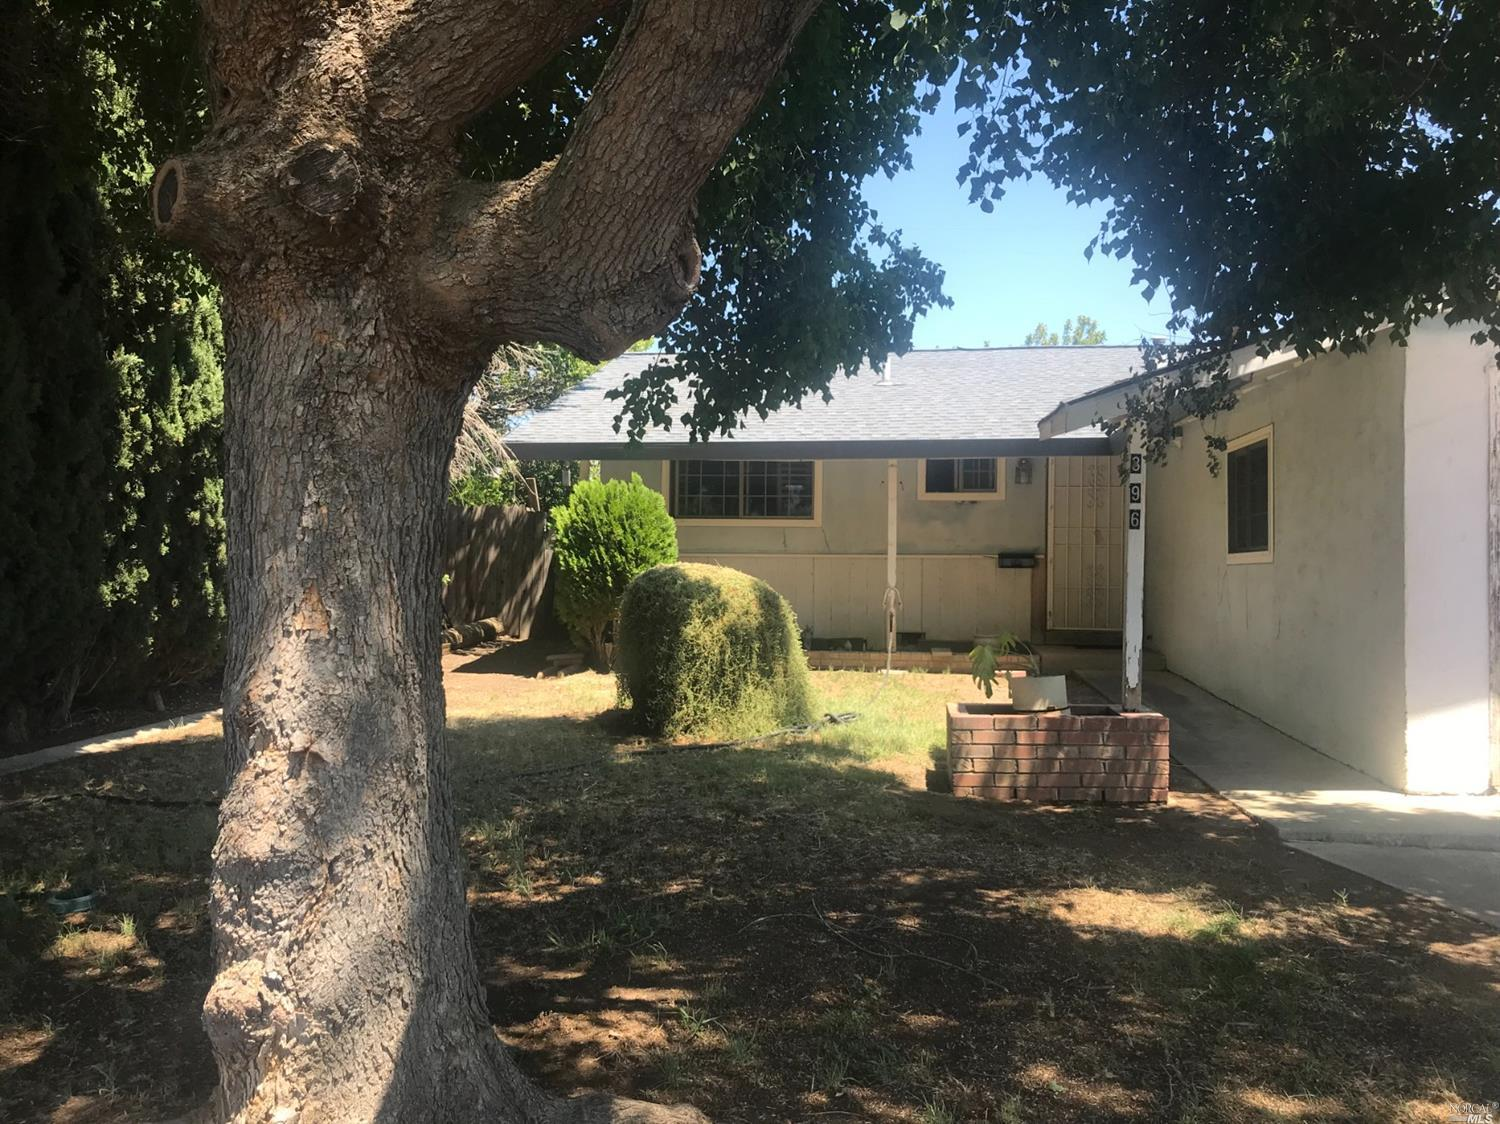 Photo of 396 Elsinore Drive, Vacaville, CA 95687